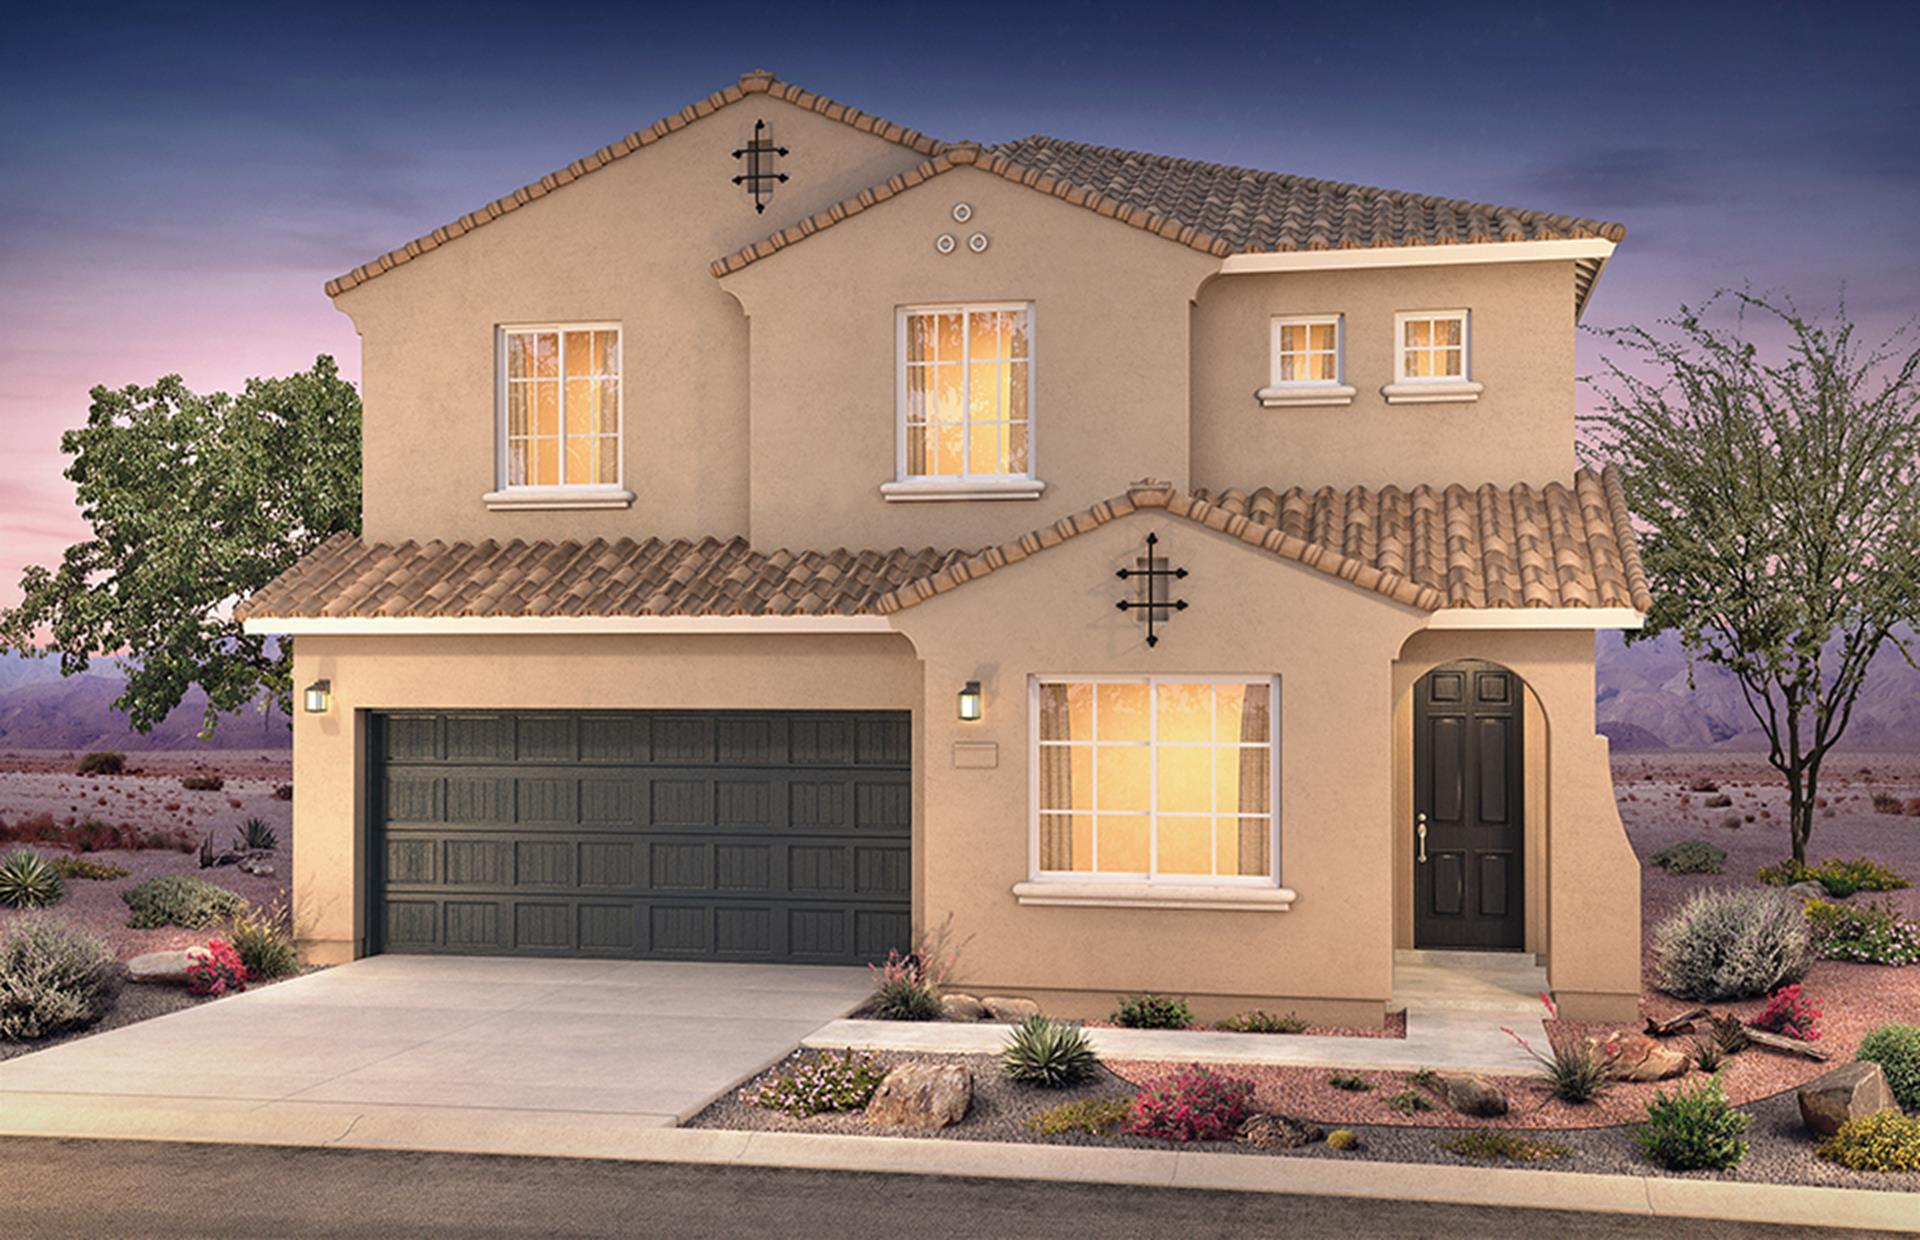 Brand new, never lived in Pulte home. Enjoy brand new appliances, new carpet, new A/C, new tank-less hot water heater, green built, brand new community in Rio Rancho, Highly rated schools, and so much more! The Park Place home design is available now! You'll enjoy a community with many amenities including walking trails and a 3-acre park coming soon. Home includes a kitchen fit for a chef with built-in appliances and granite countertops. Off the kitchen is a multi-functional space for homework, bill paying, charging electronics, and more in the Pulte Planning Center.